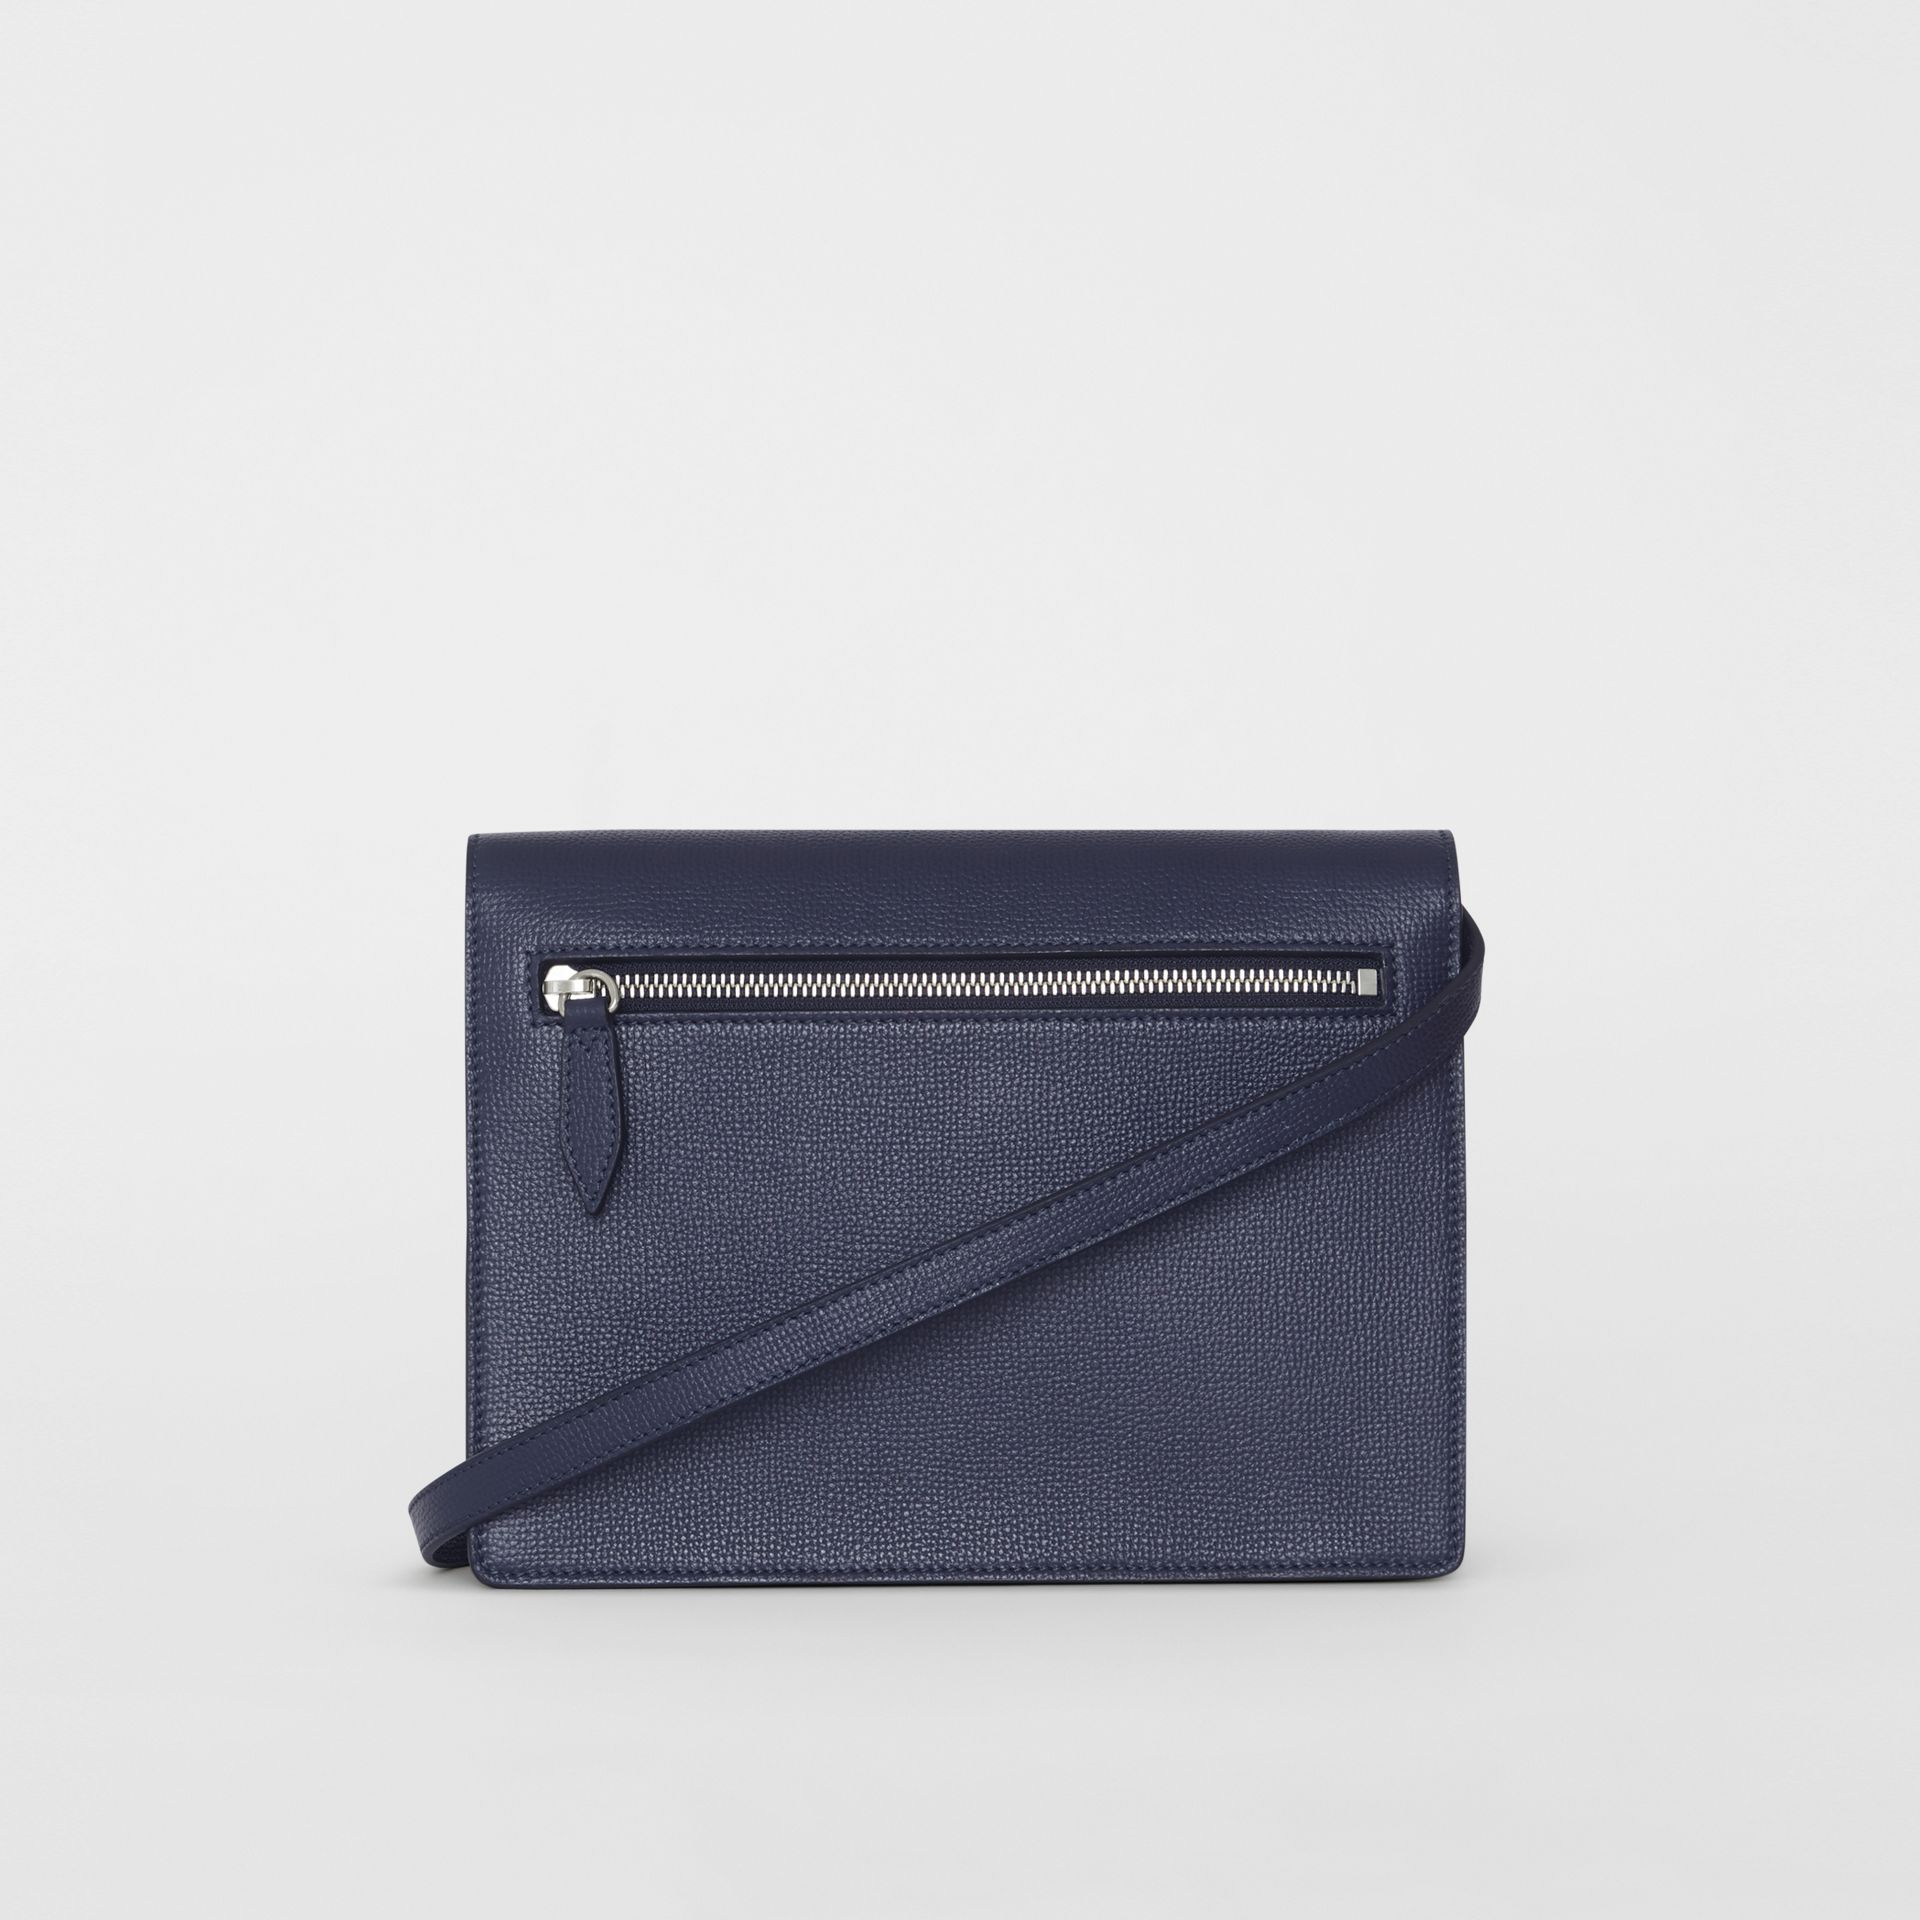 Small Vintage Check and Leather Crossbody Bag in Regency Blue - Women | Burberry Australia - gallery image 5